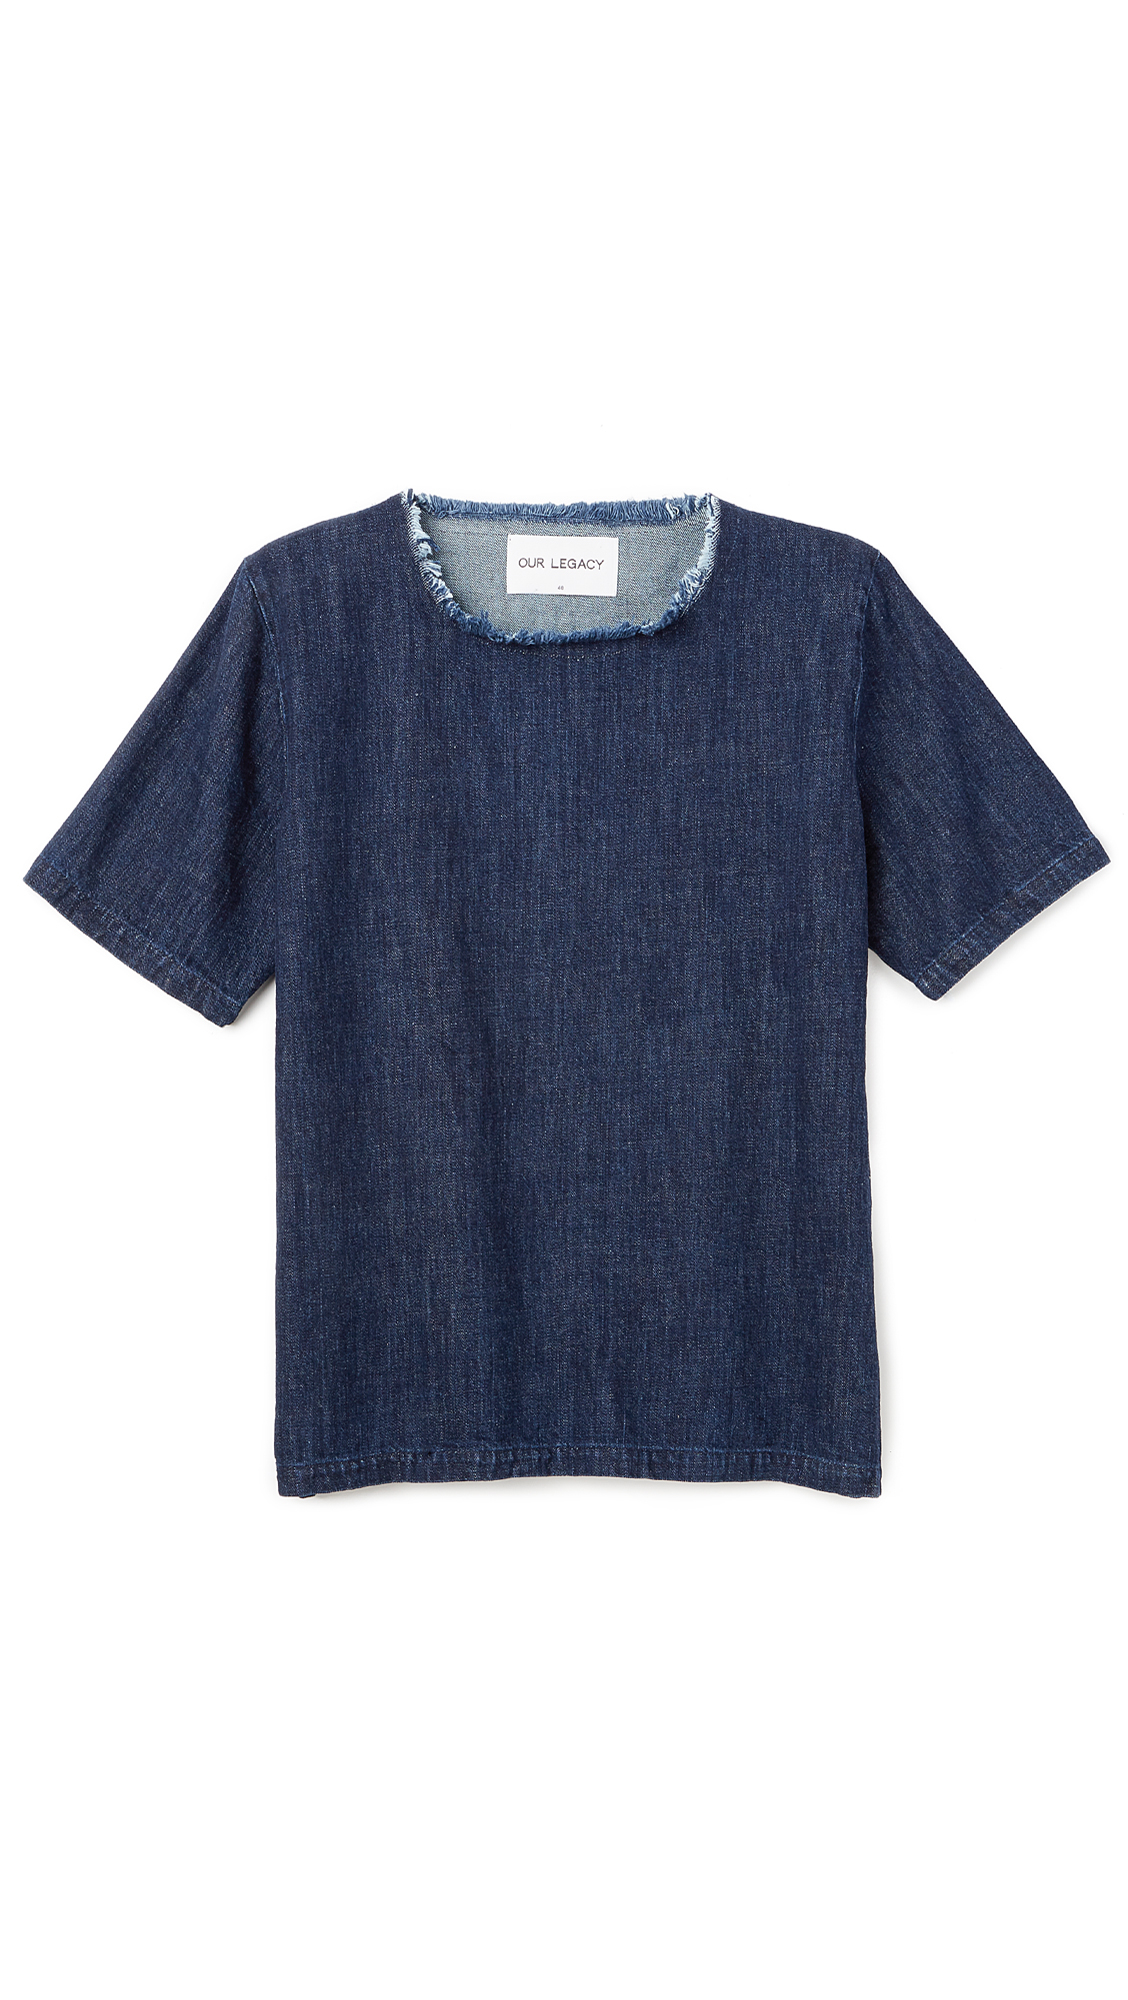 Lyst our legacy woven t shirt in blue for men Woven t shirt tags